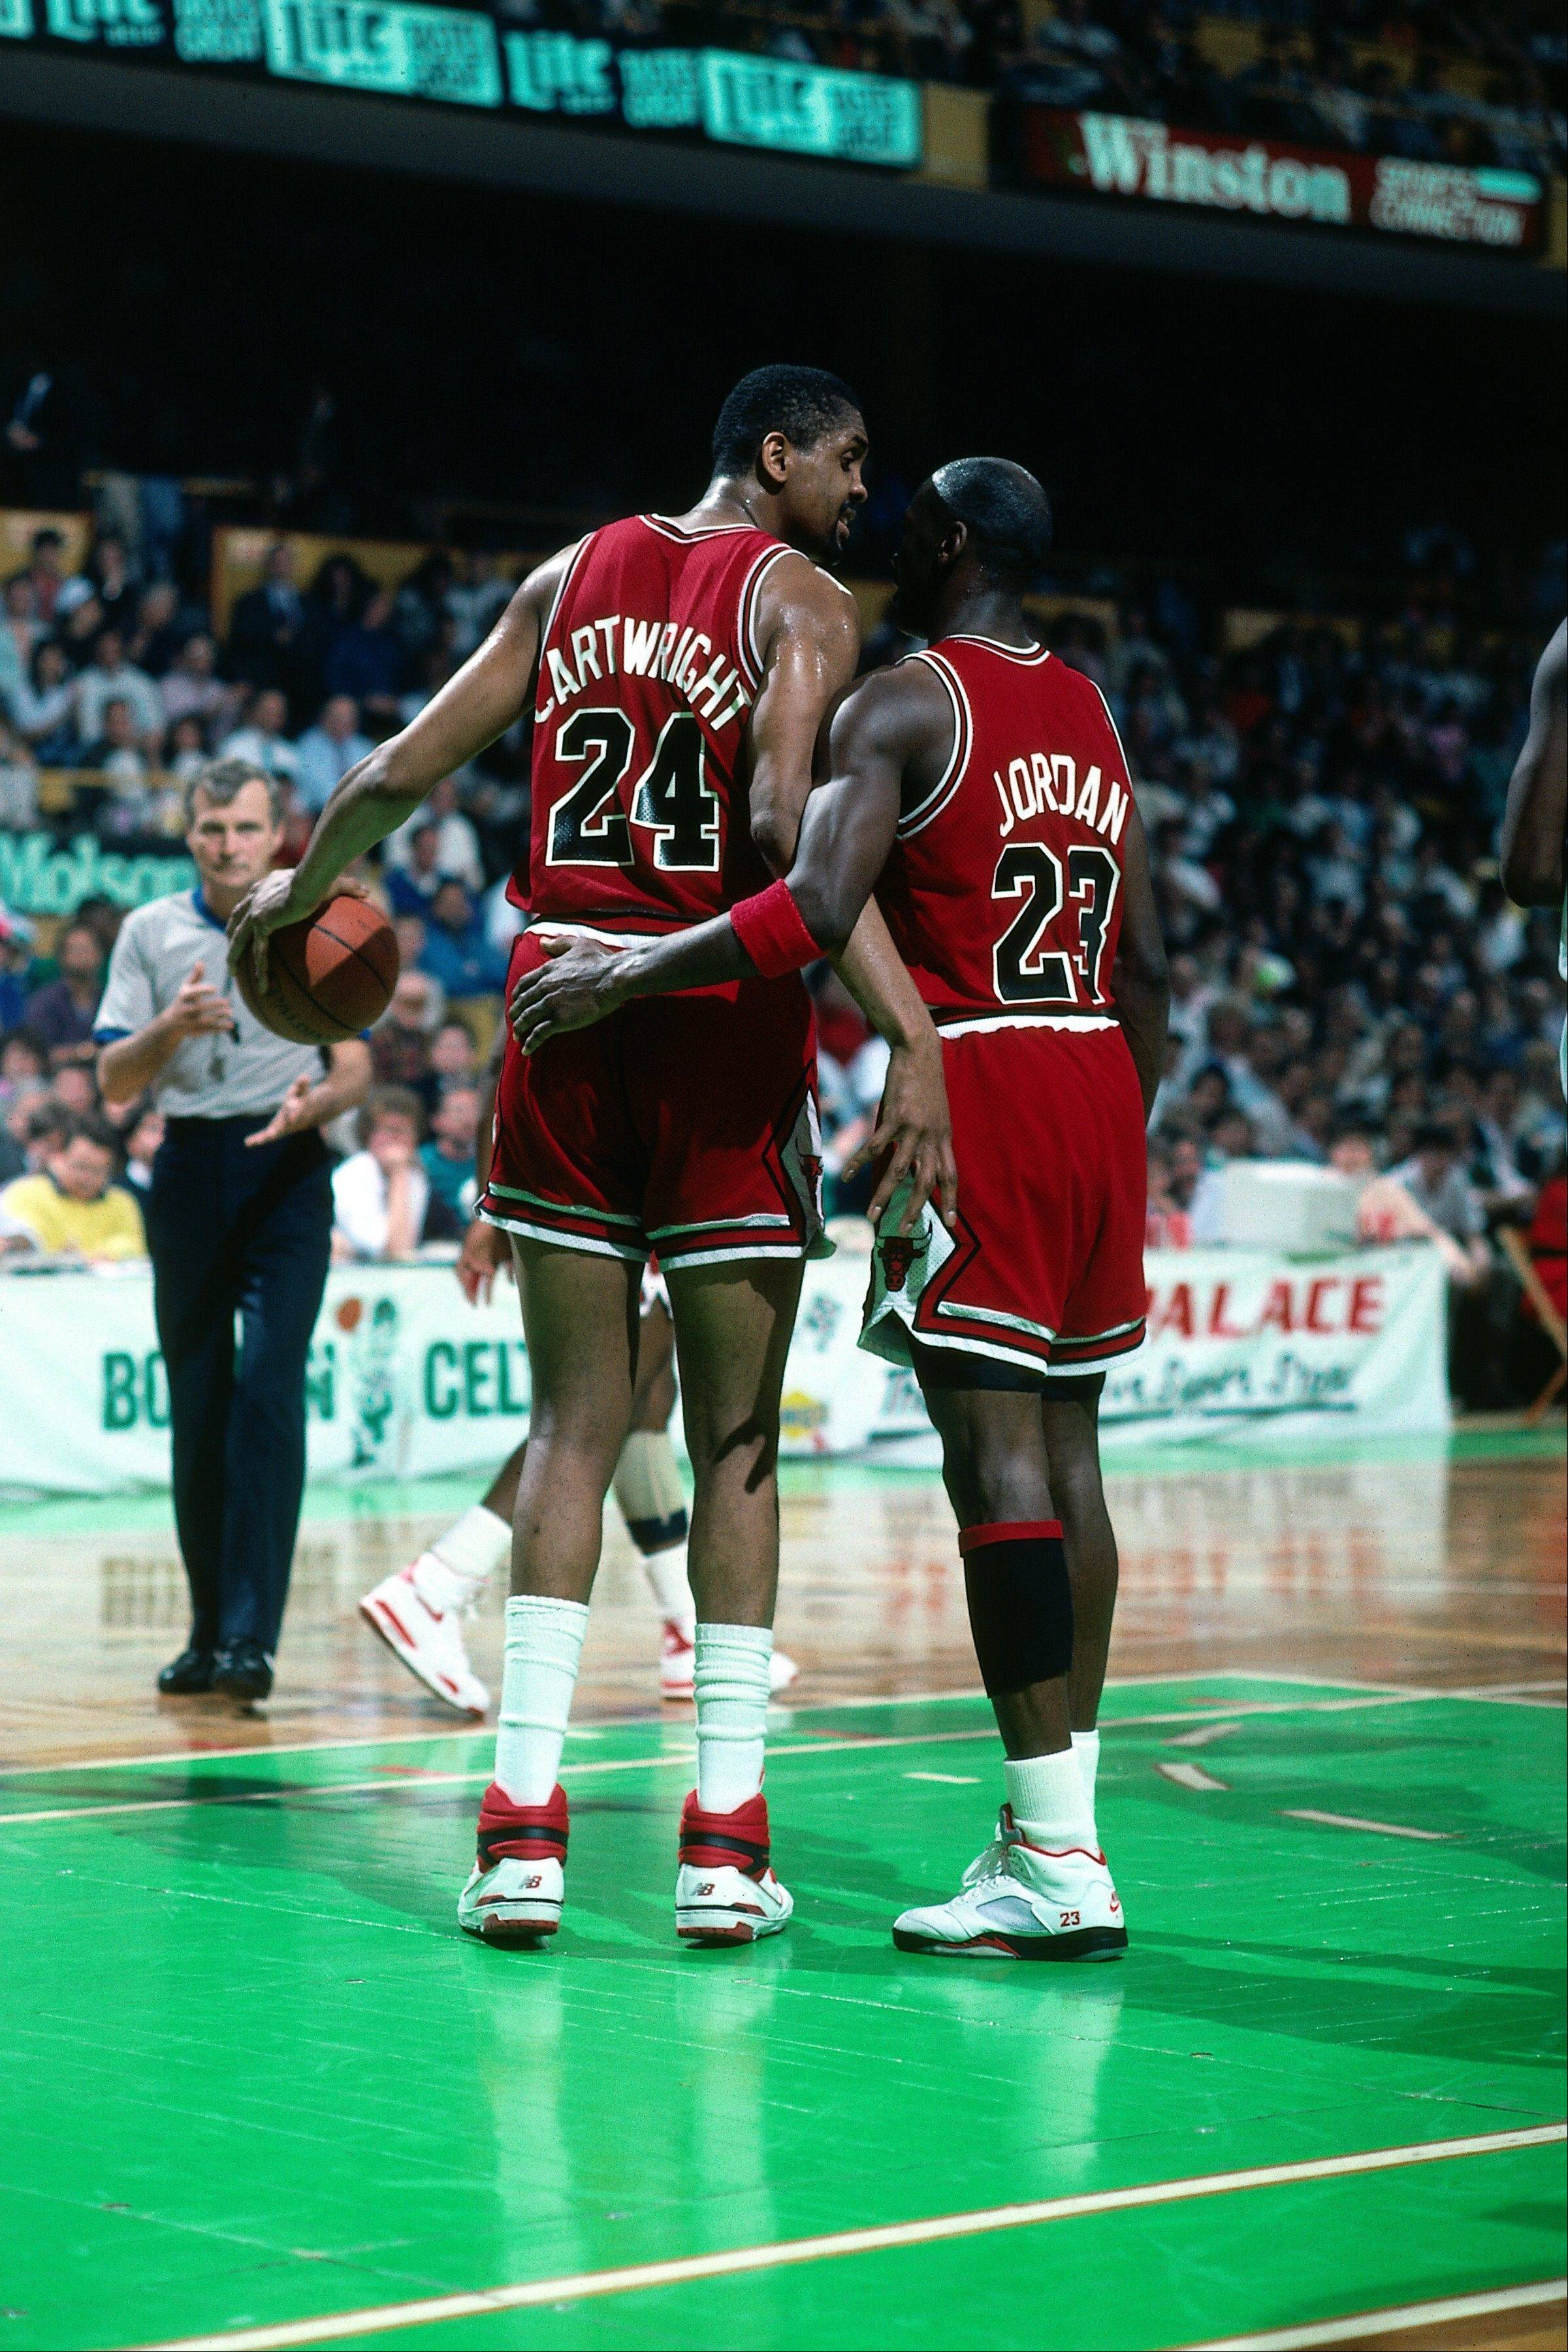 Michael Jordan (No. 23) and Bill Cartwright (No. 24) of the Chicago Bulls talk on the court against the Boston Celtics during a game played in 1990 at the Boston Garden in Boston, Mass.